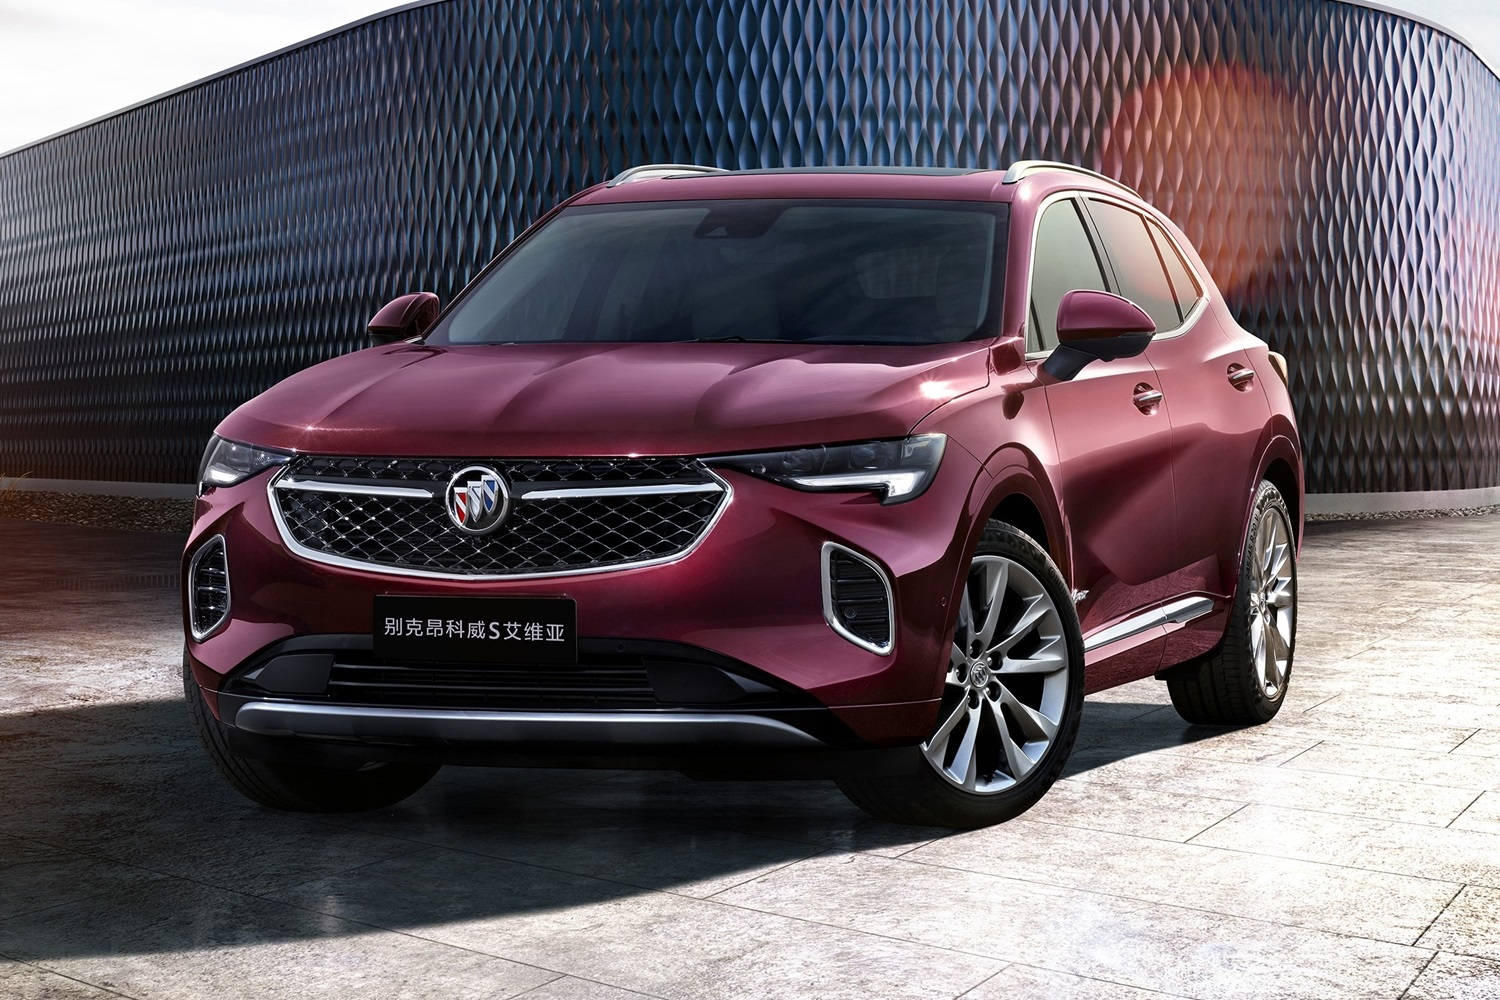 Range-Topping 2021 Buick Envision Avenir Revealed | Gm Authority New 2022 Buick Cascada Used, 0-60, Colors